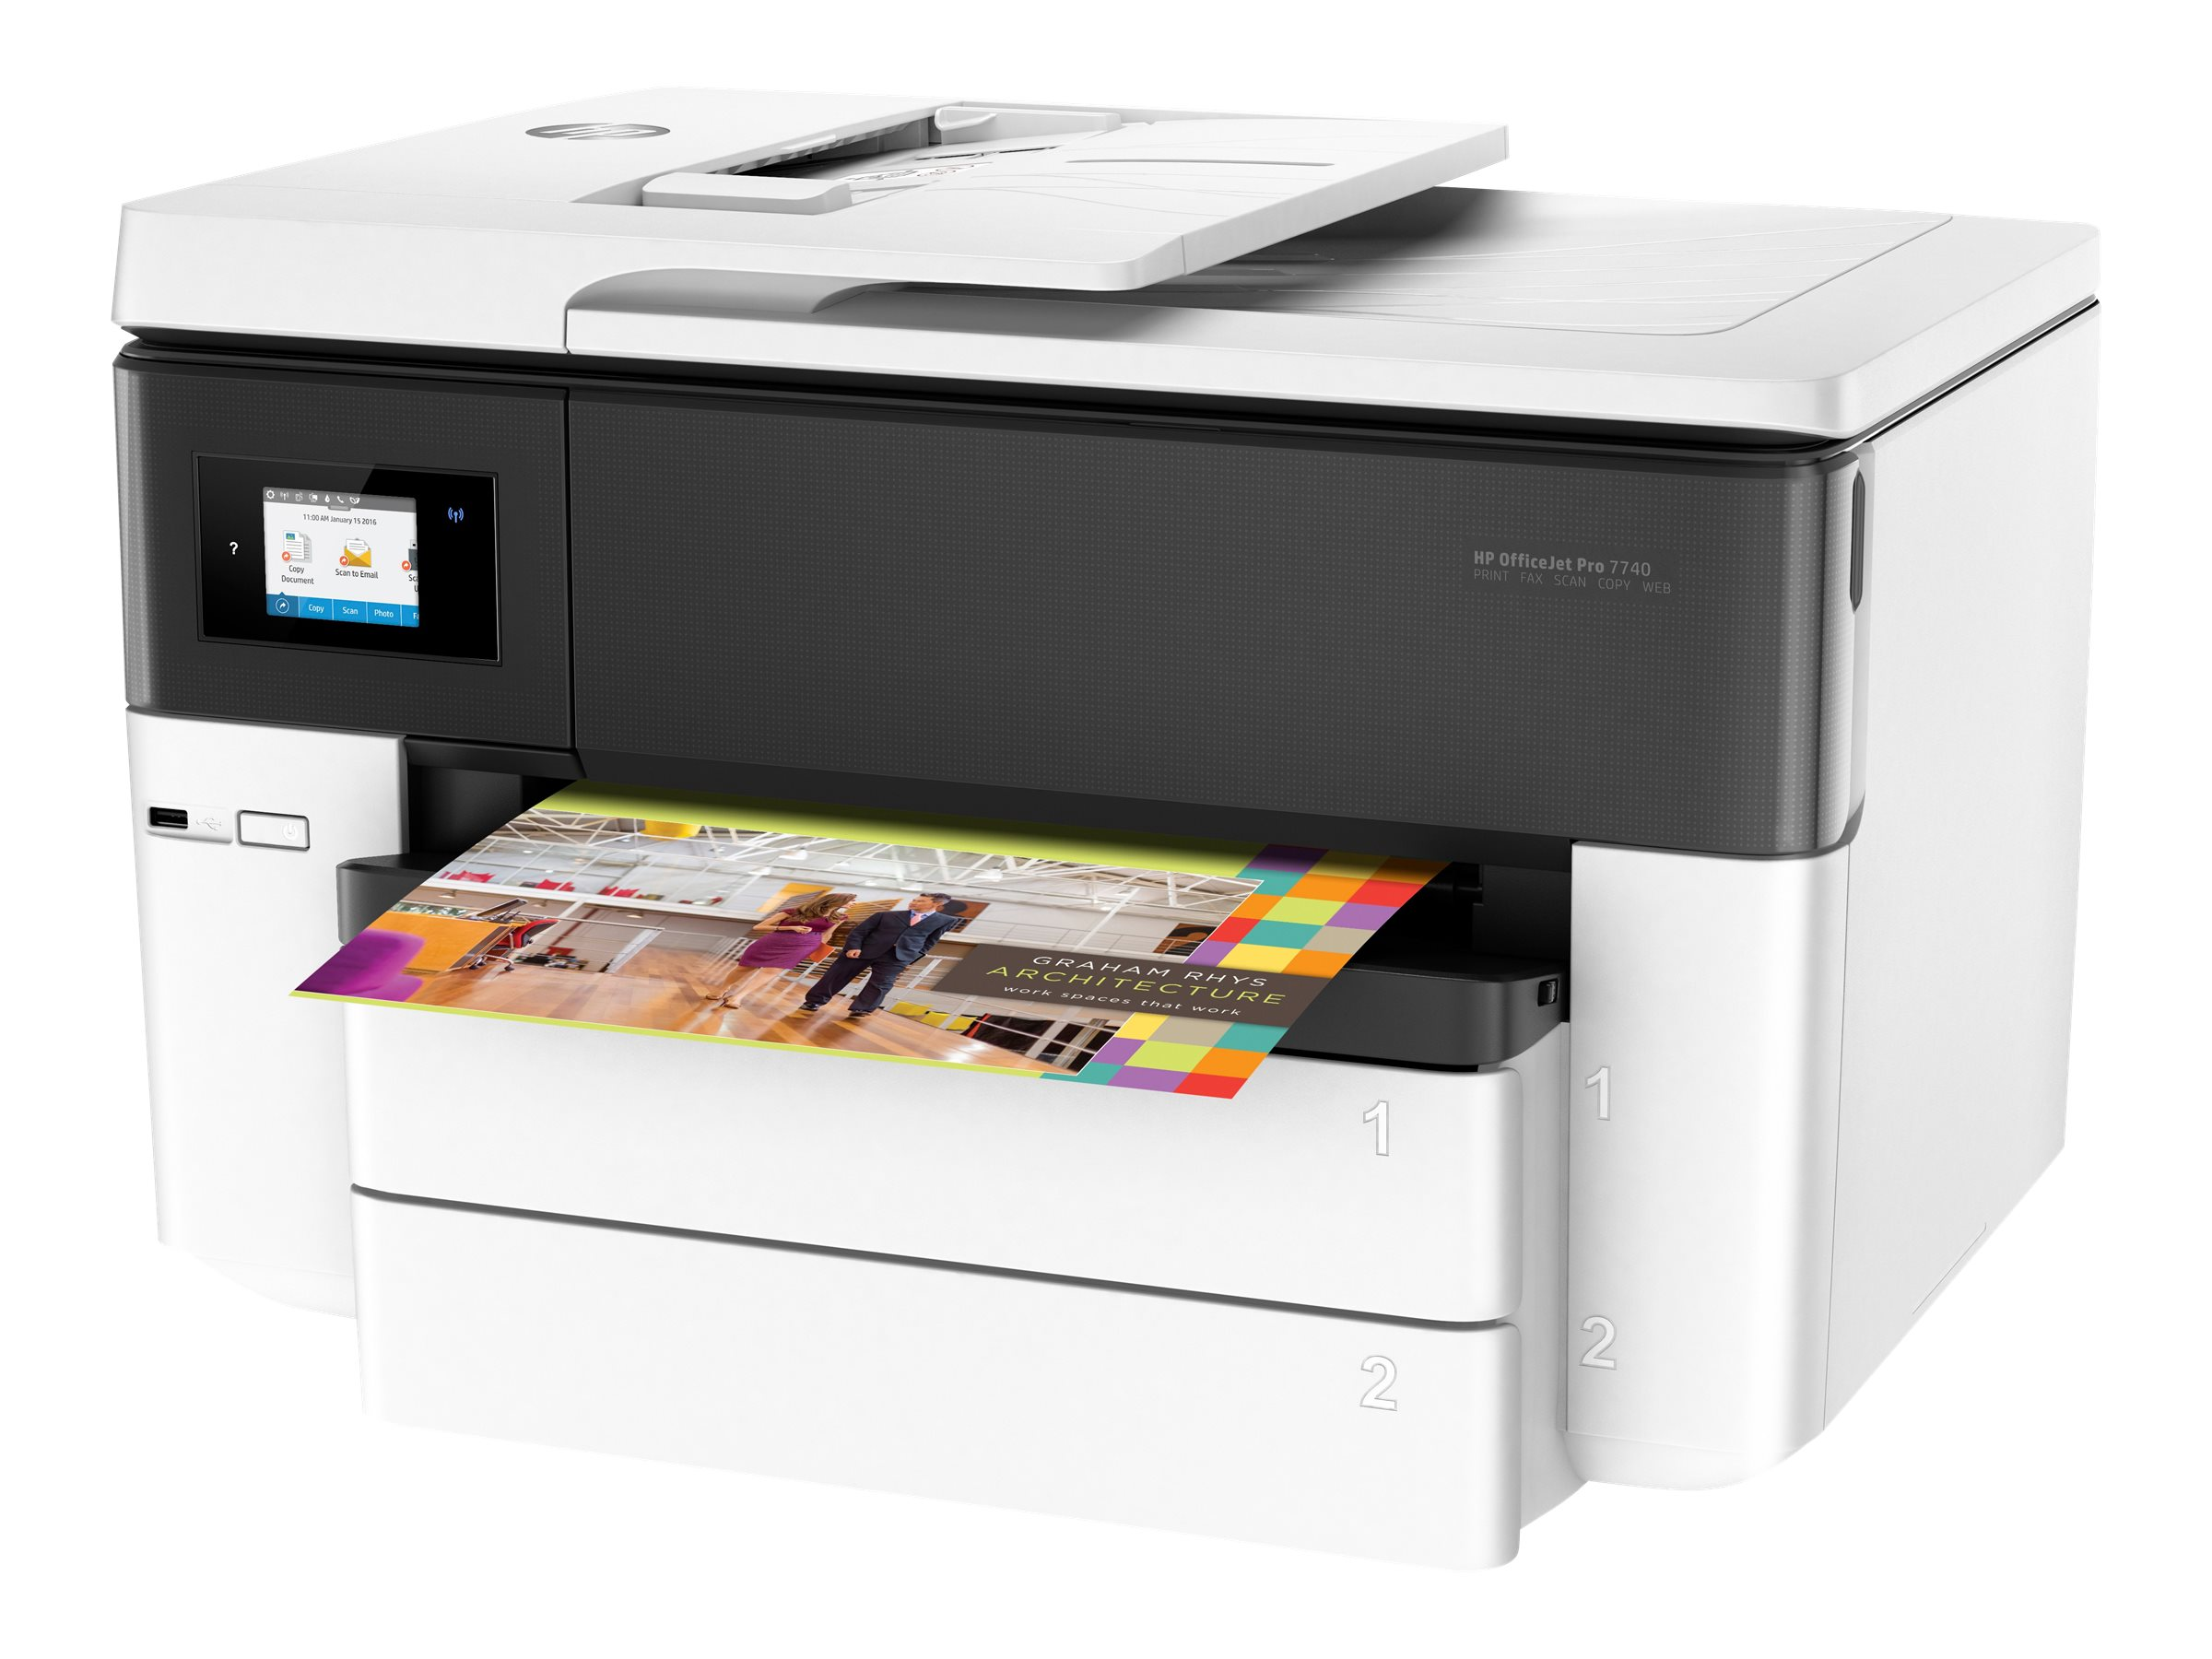 HP Officejet Pro 7740 All-in-One - multifunction printer - color